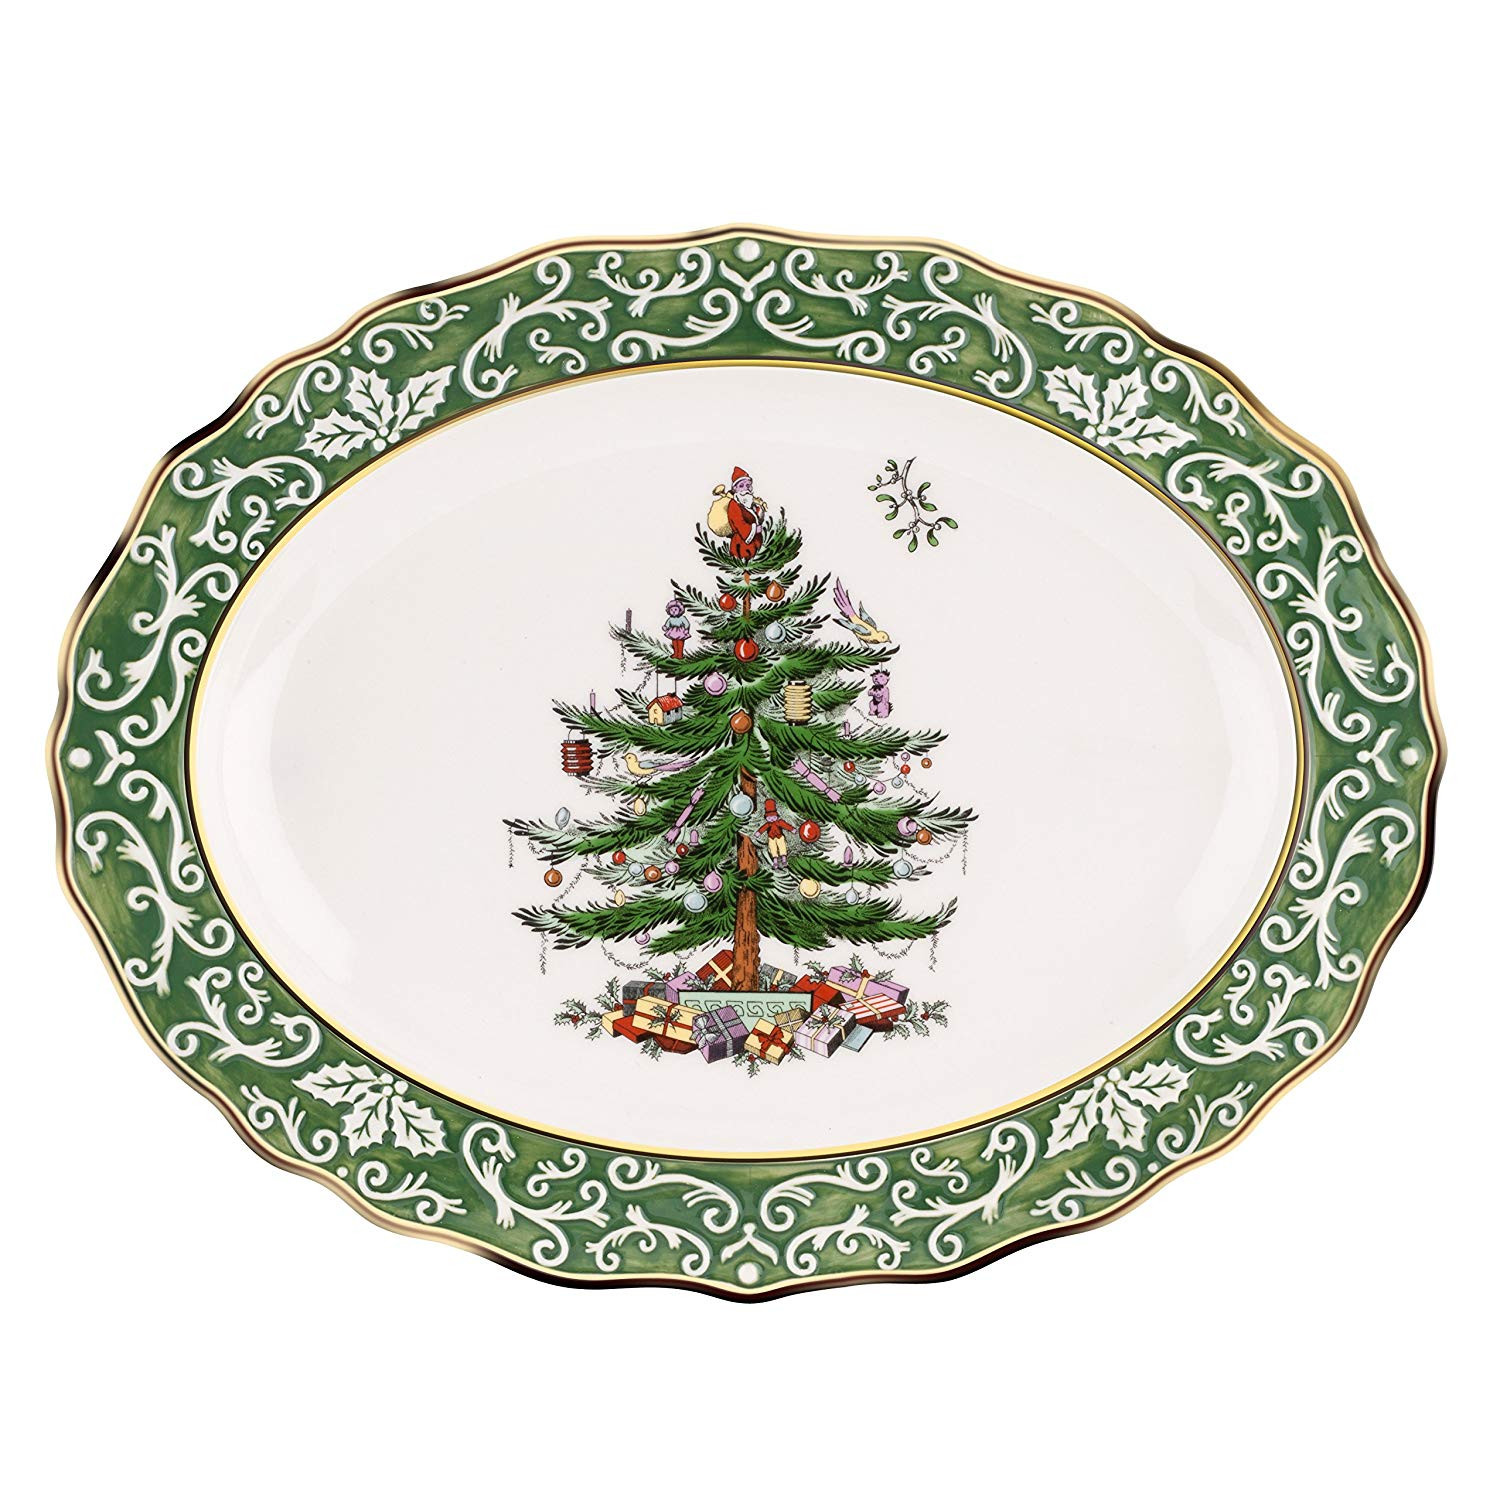 christmas tree shop vases of amazon com spode christmas tree embossed platter large gold pertaining to amazon com spode christmas tree embossed platter large gold kitchen dining